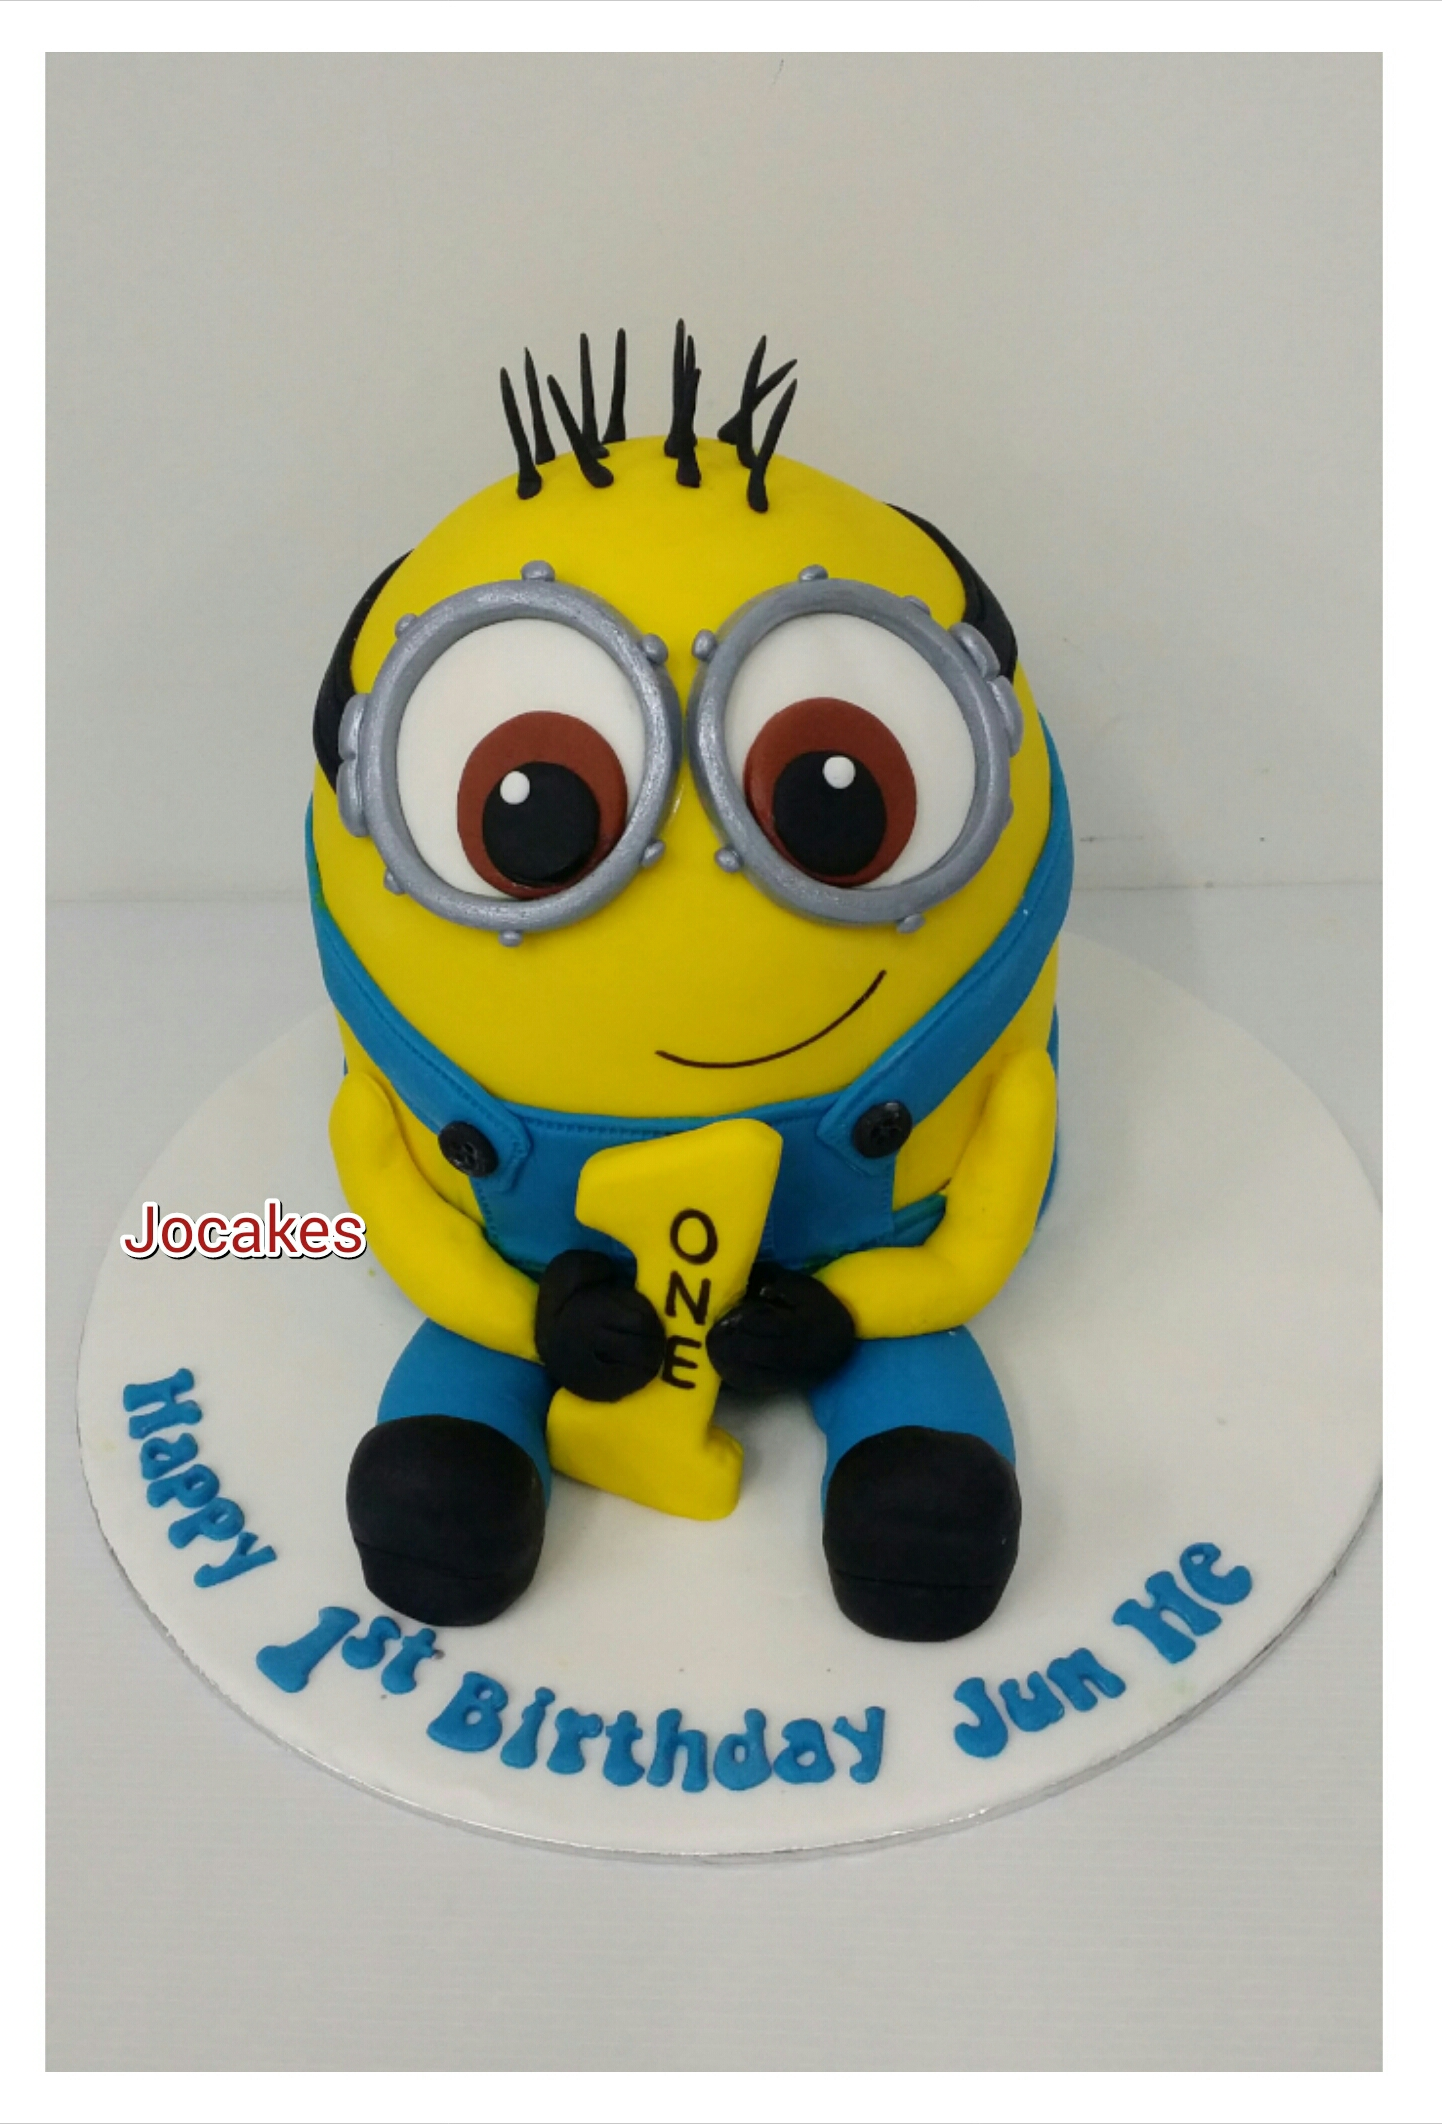 Miraculous Library Of Minion Birthday Cake Free Stock Files Funny Birthday Cards Online Inifodamsfinfo